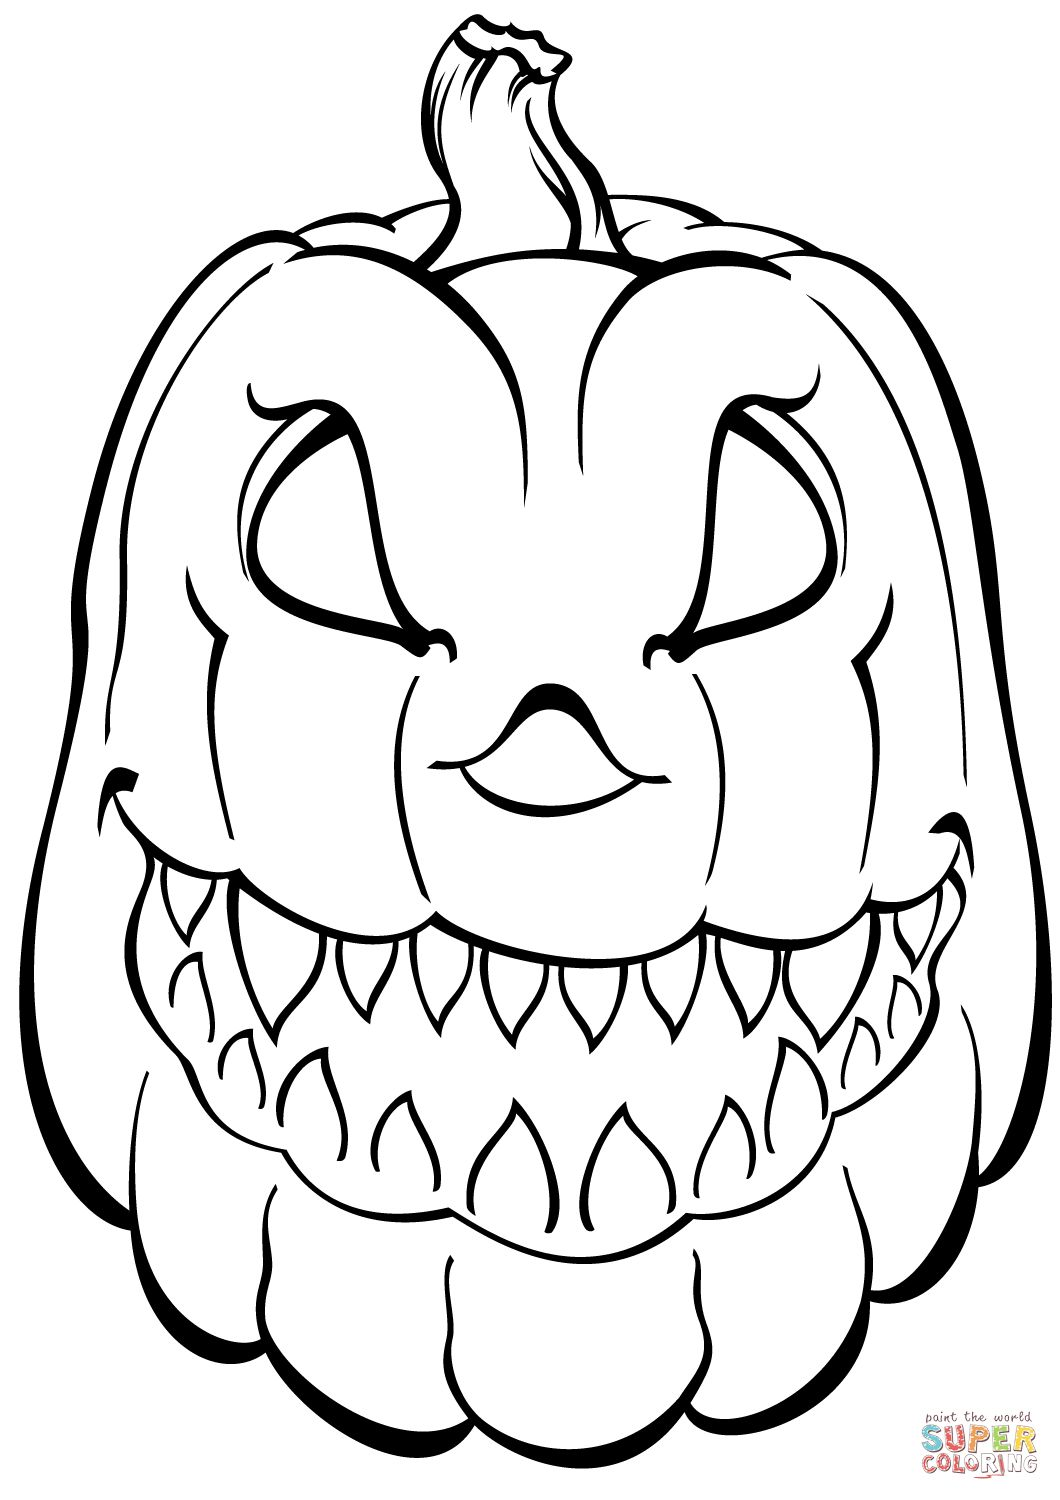 Free Printable Pumpkin Coloring Pages Scary Pumpkin Coloring Page Free Printable Coloring Pages Entitlementtrap Com Pumpkin Coloring Pages Halloween Pumpkin Coloring Pages Witch Coloring Pages